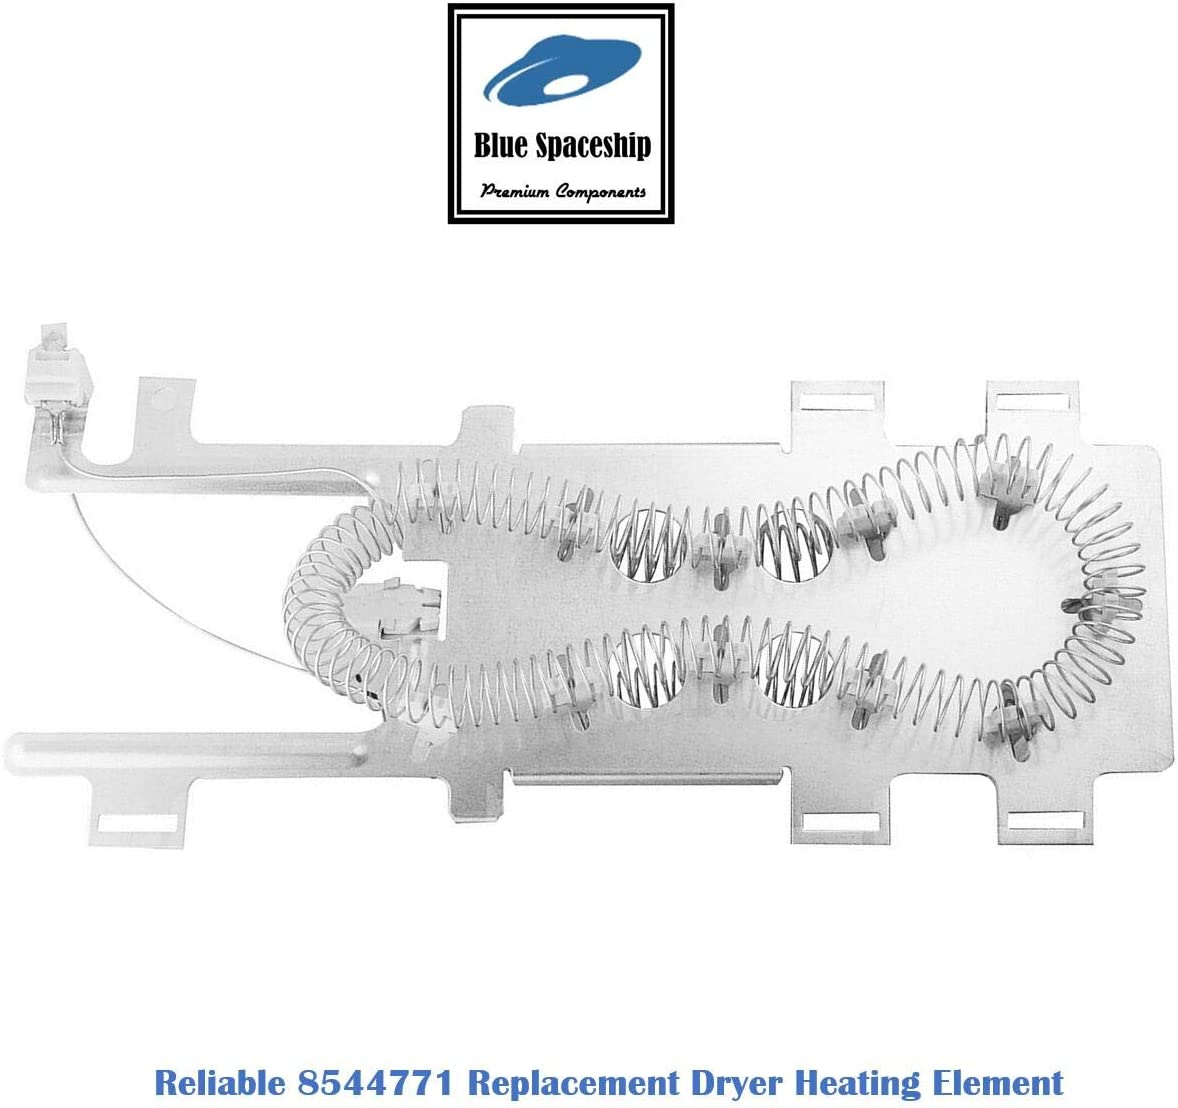 Replacement Dryer Heating Element Kit for Whirlpool KitchenAid Maytag Roper